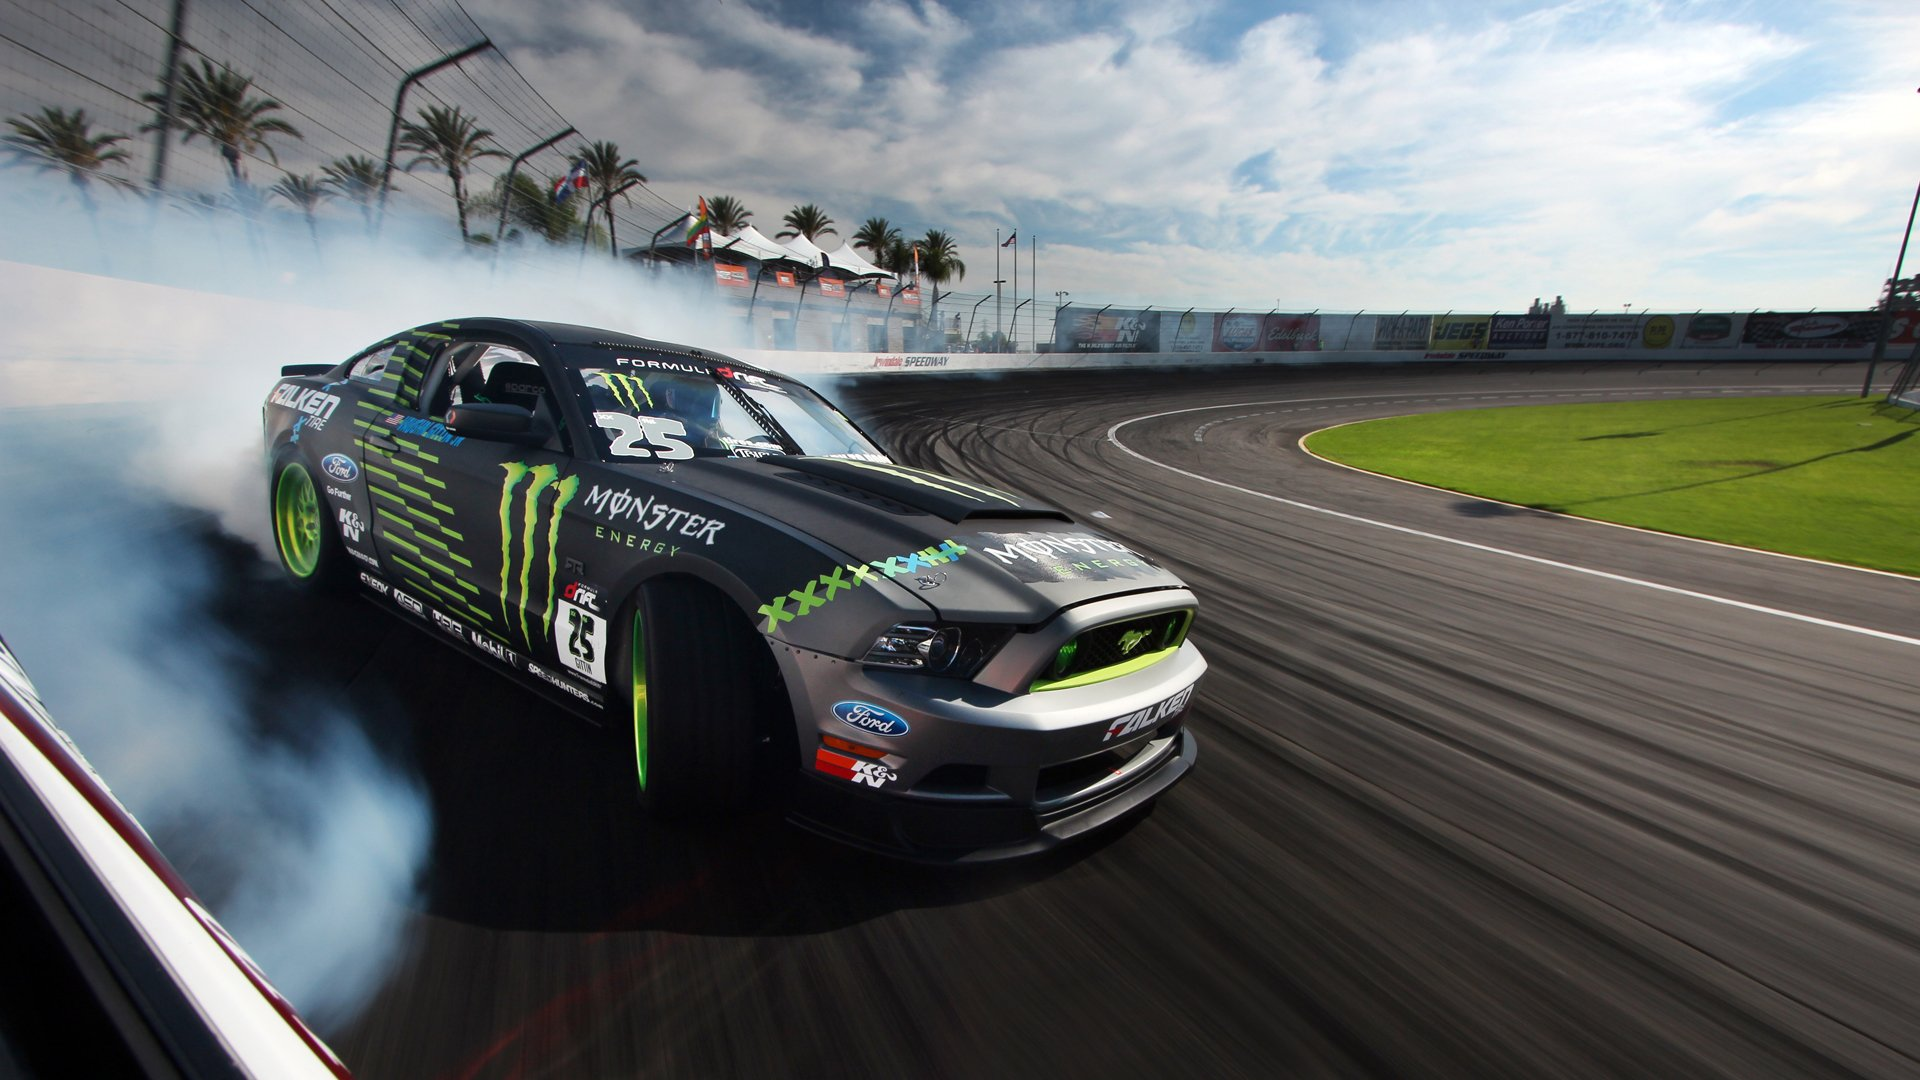 Muscle Car Hd Wallpapers 1080p Ford Mustang Rtr Monster Energy Drift Race Racing